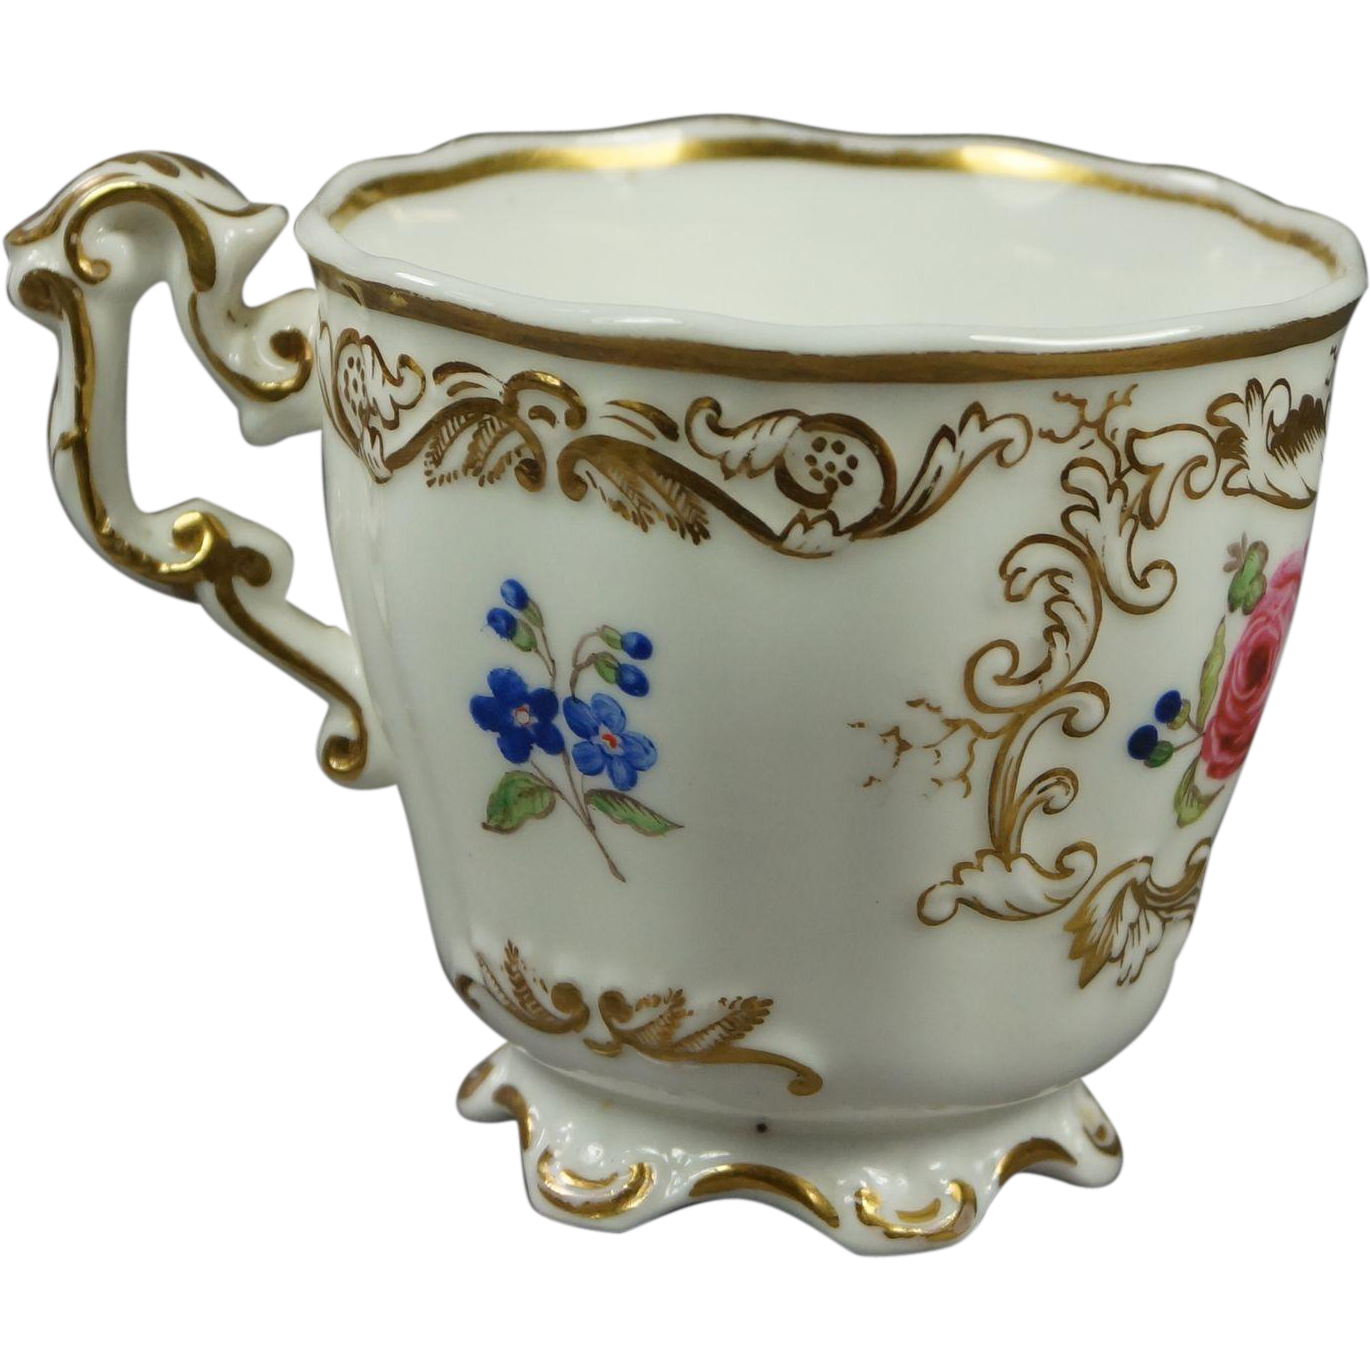 Antique 19th Century Cup English Floral Porcelain Copeland And Garrett Victorian Circa 1840